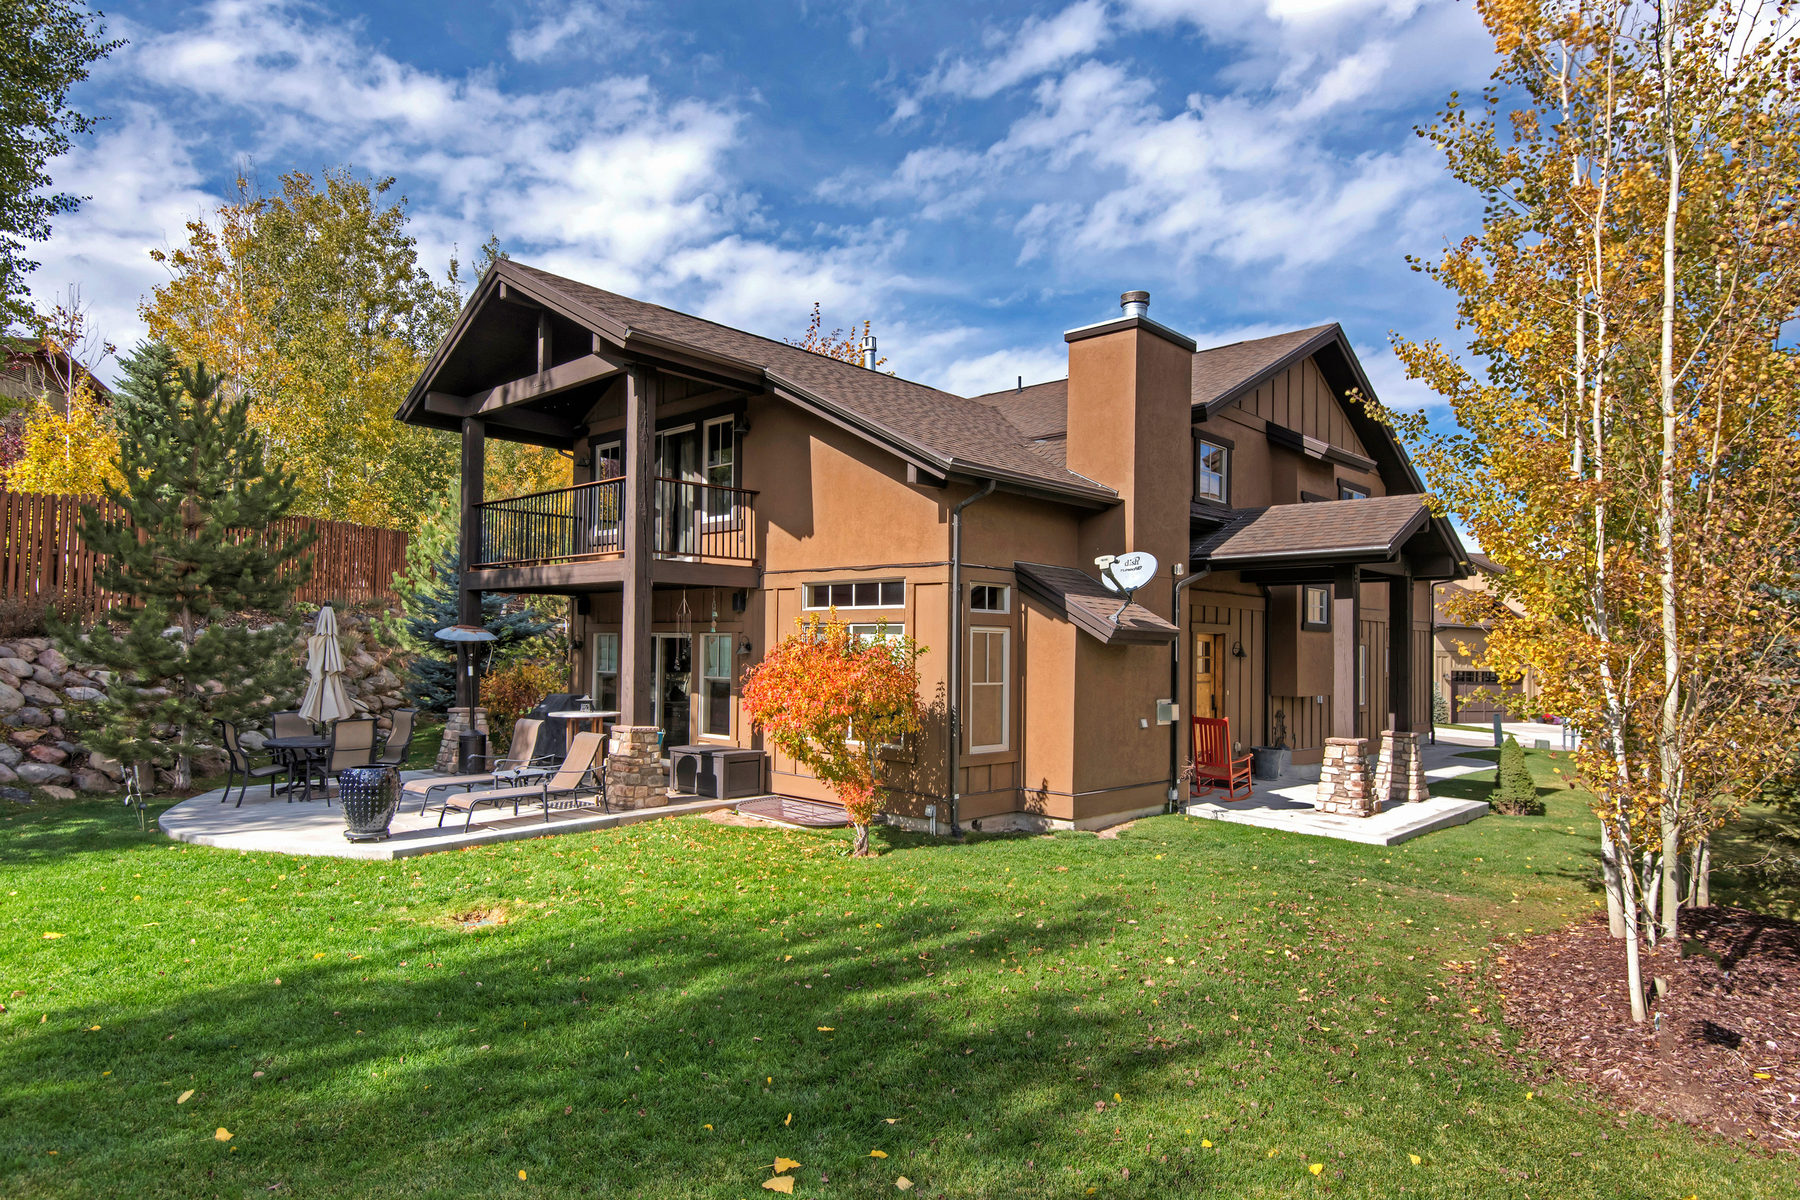 Single Family Home for Sale at Ecker Village Home in One of the Most Desirabale Locations 7841 Engen Loop Park City, Utah 84098 United States